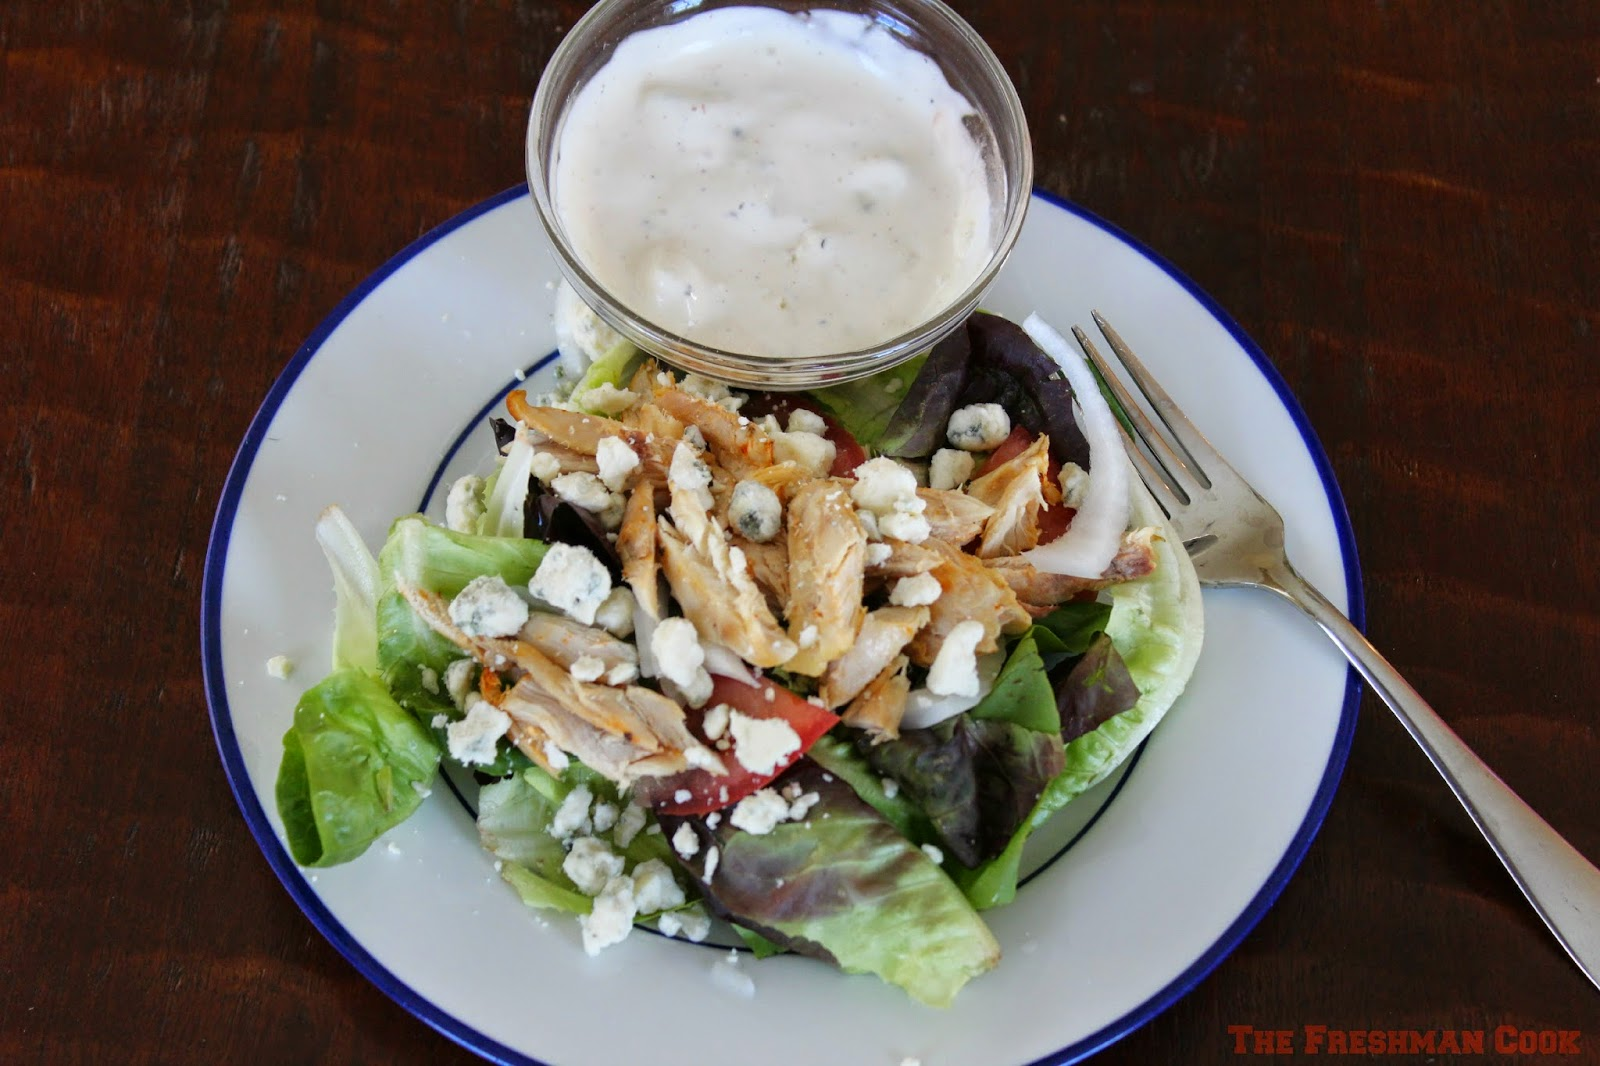 buffalo wing, salad, veggie salad, blue cheese and ranch dressing